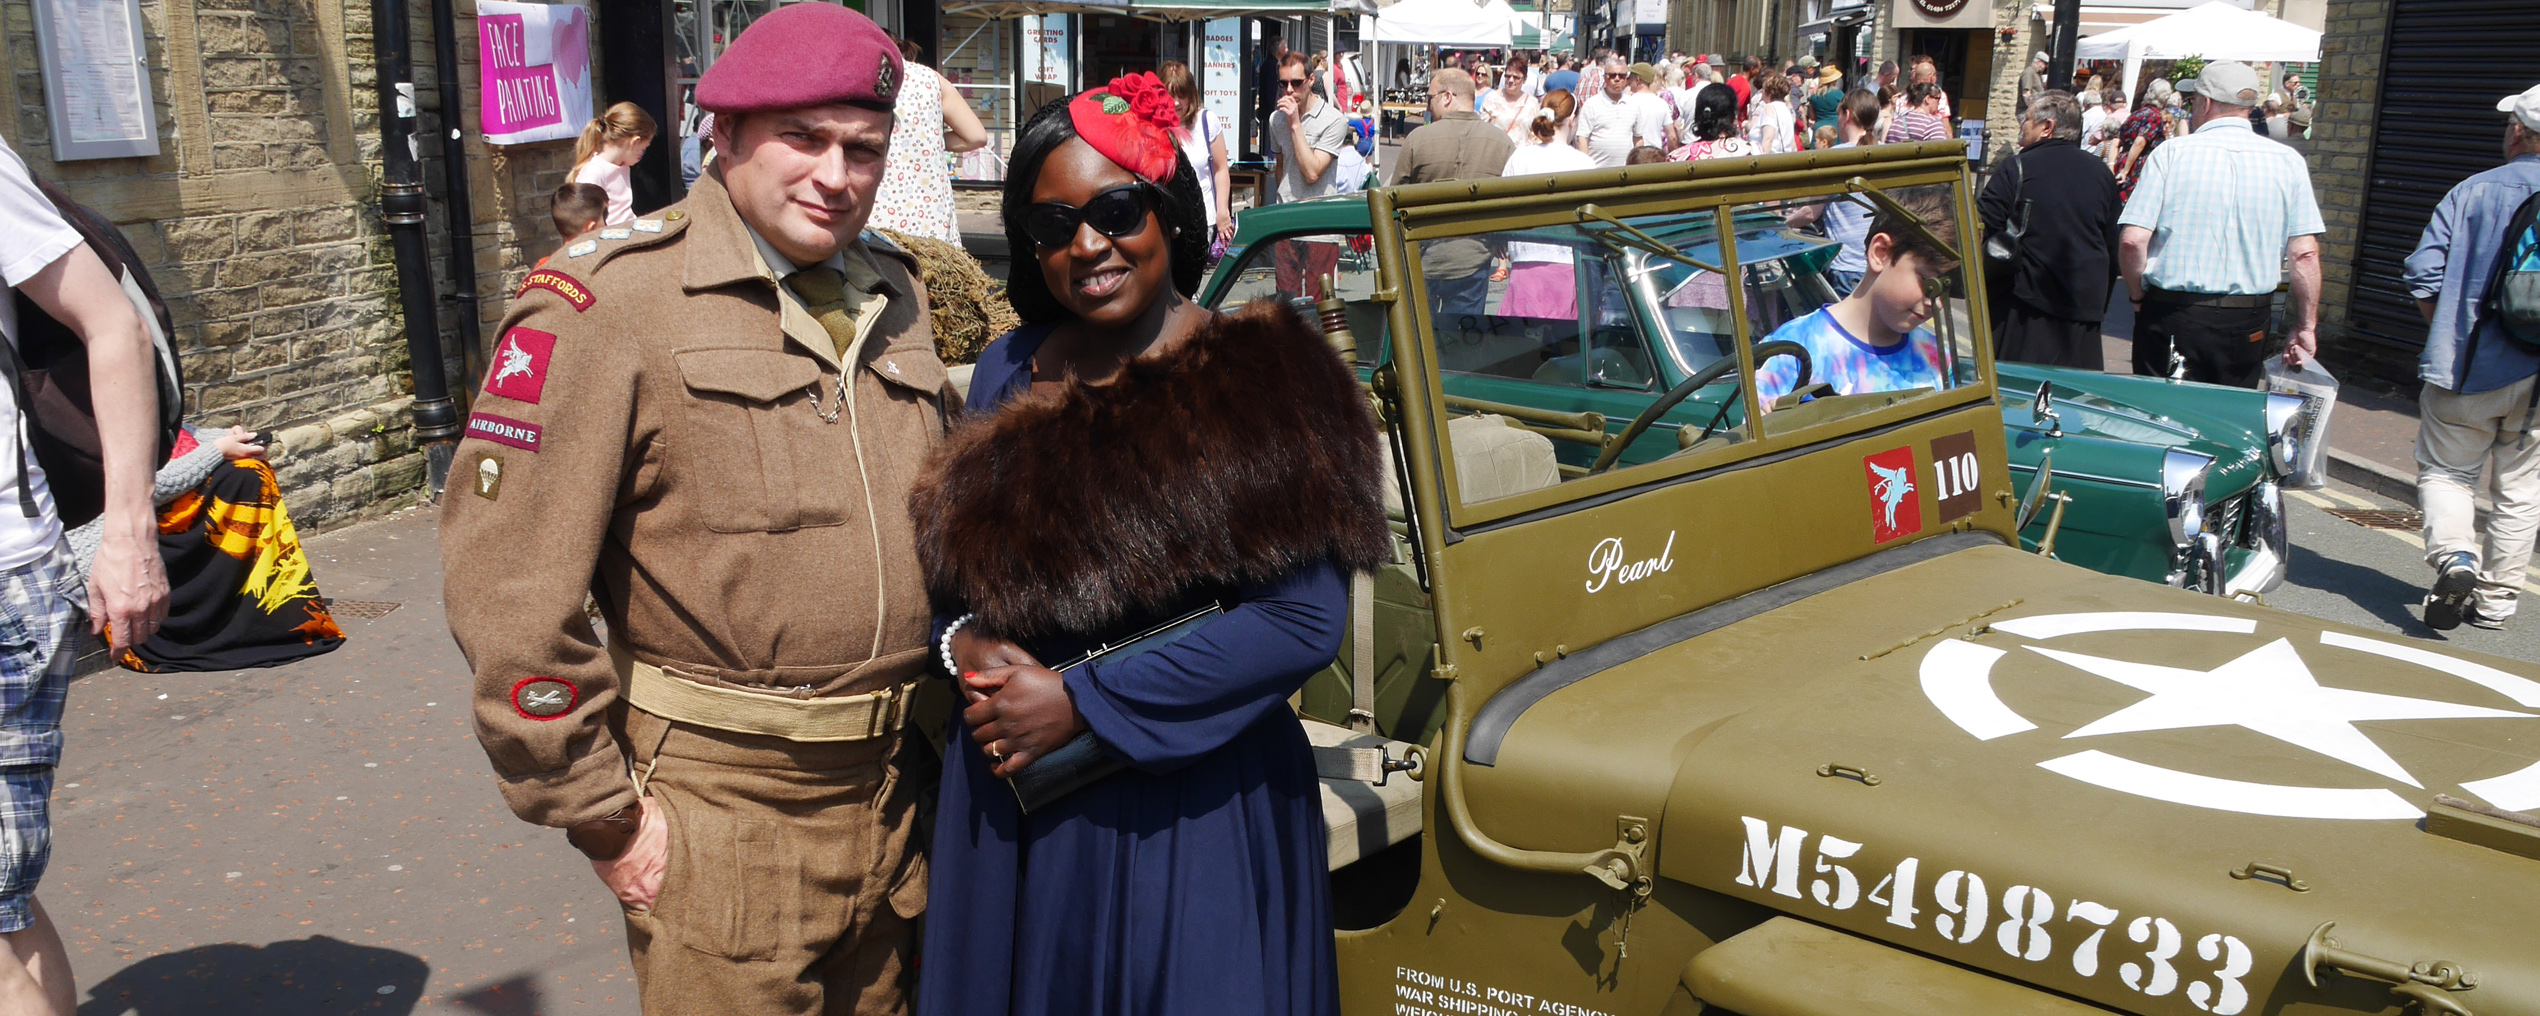 Brighouse 1940s Weekend Celebration